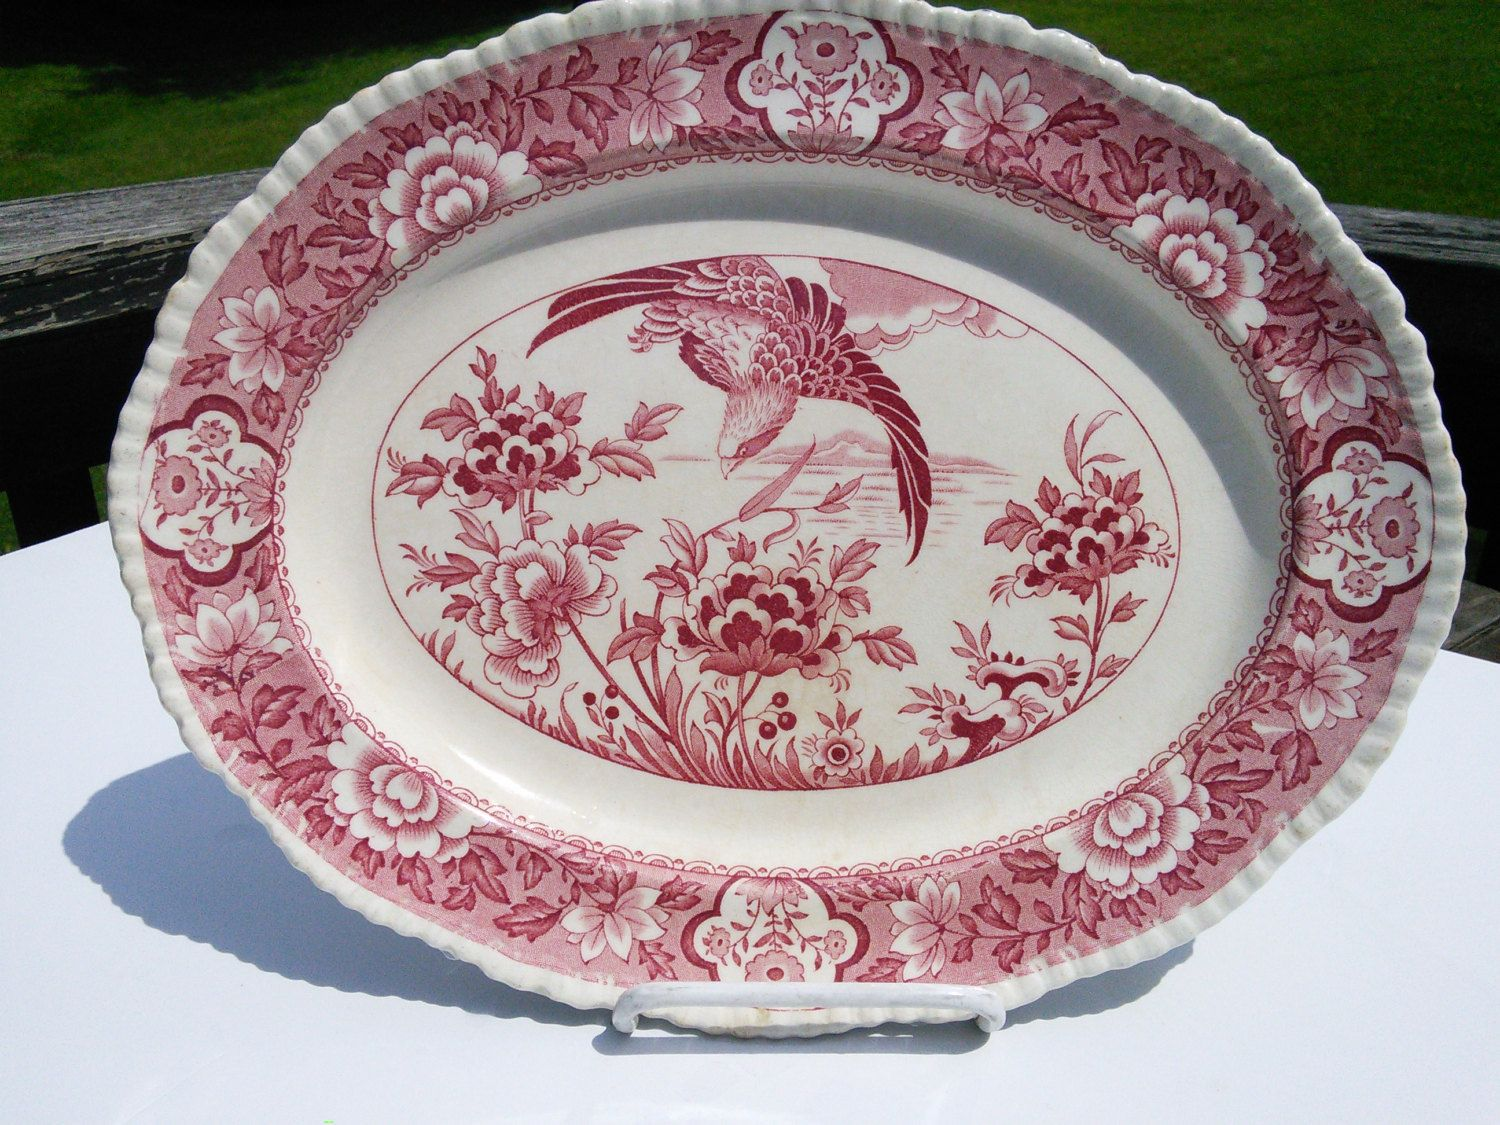 Woods Ware Red Pink Aquila Pattern Platter By Wood Sons England Red Transfer Ware Vintage China Cottage Chic Vintage Dinnerware Vintage China Victorian Decor